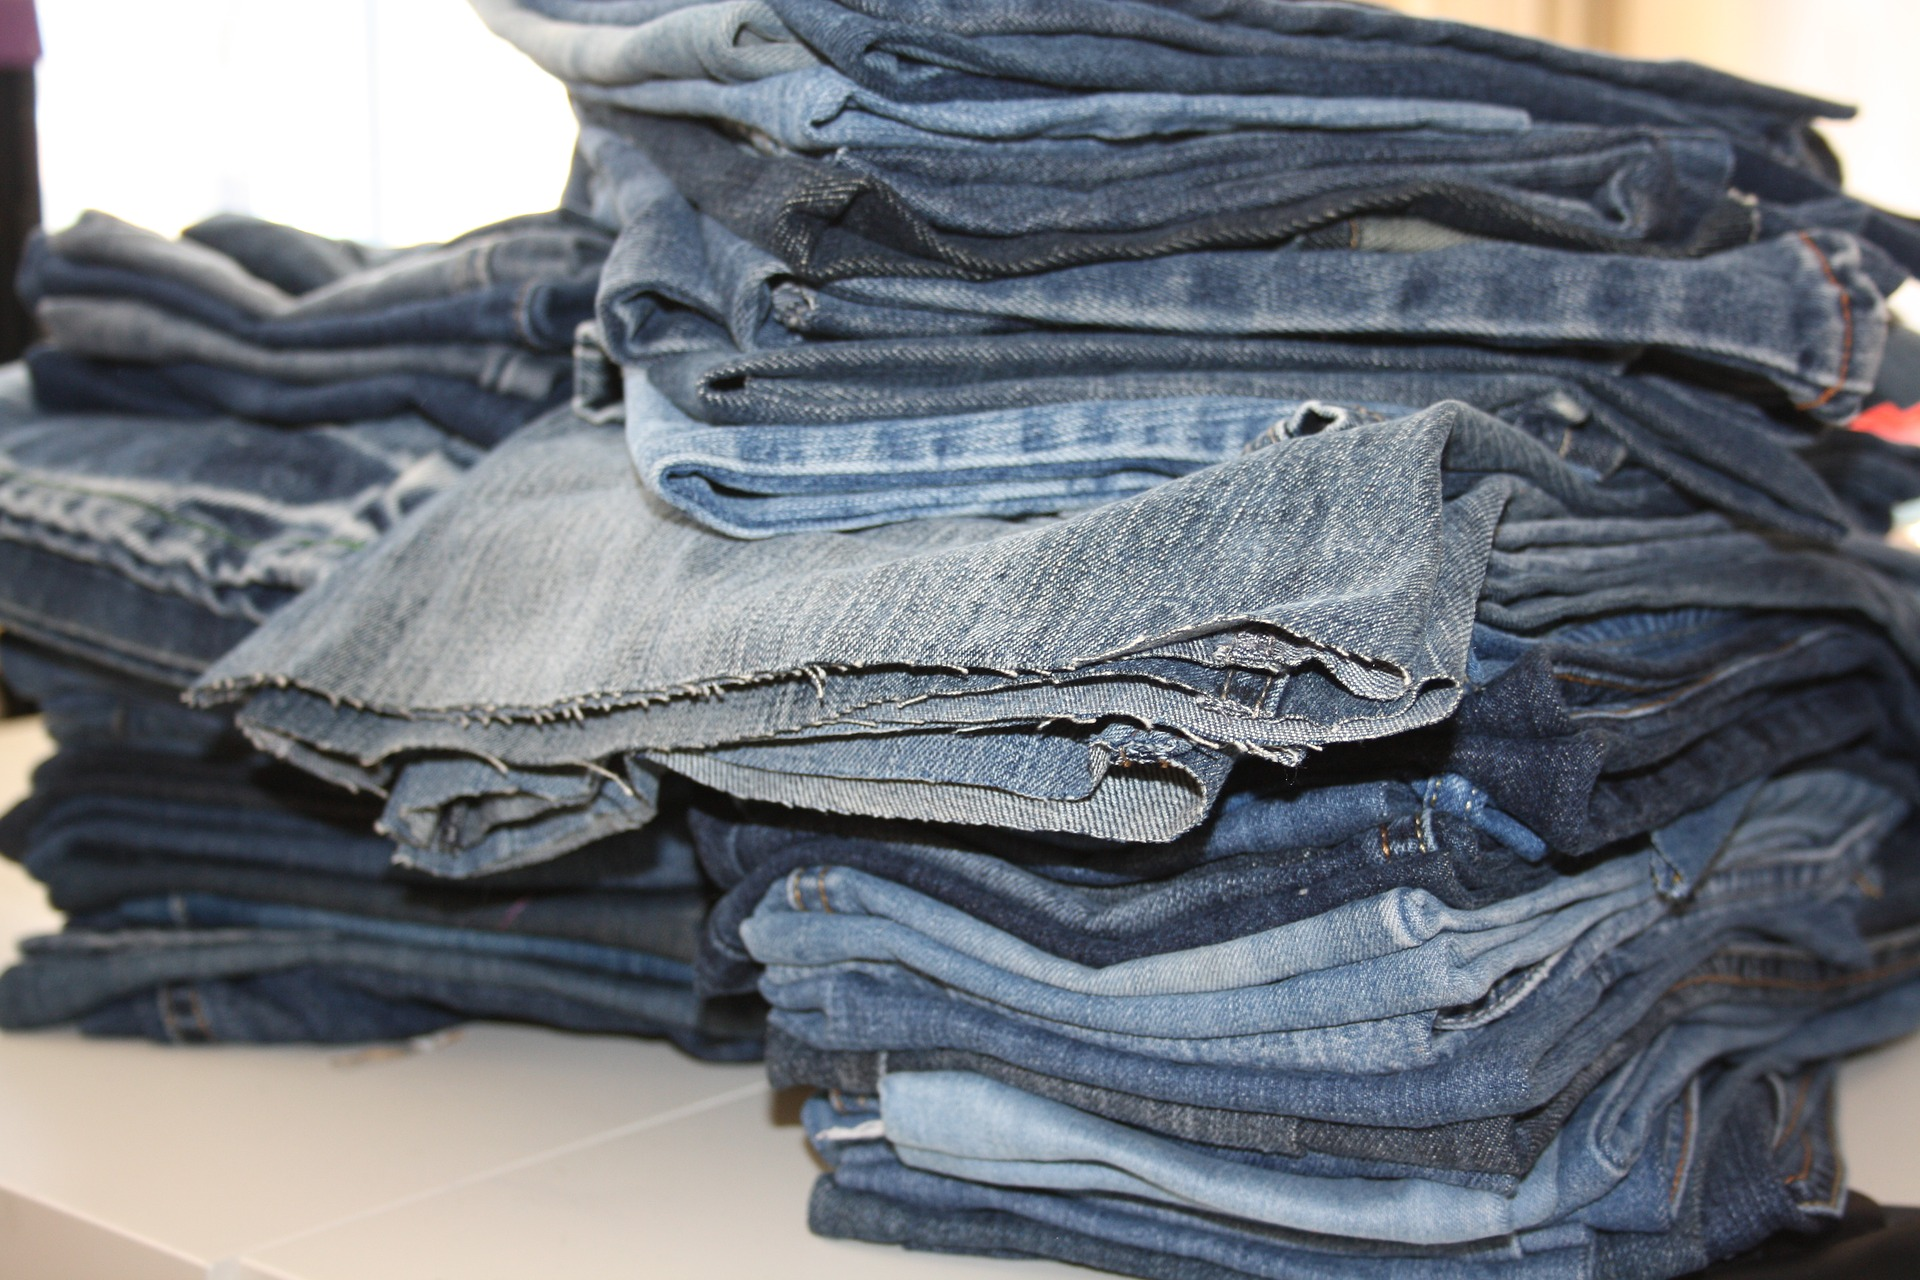 old-jeans-3589262_1920